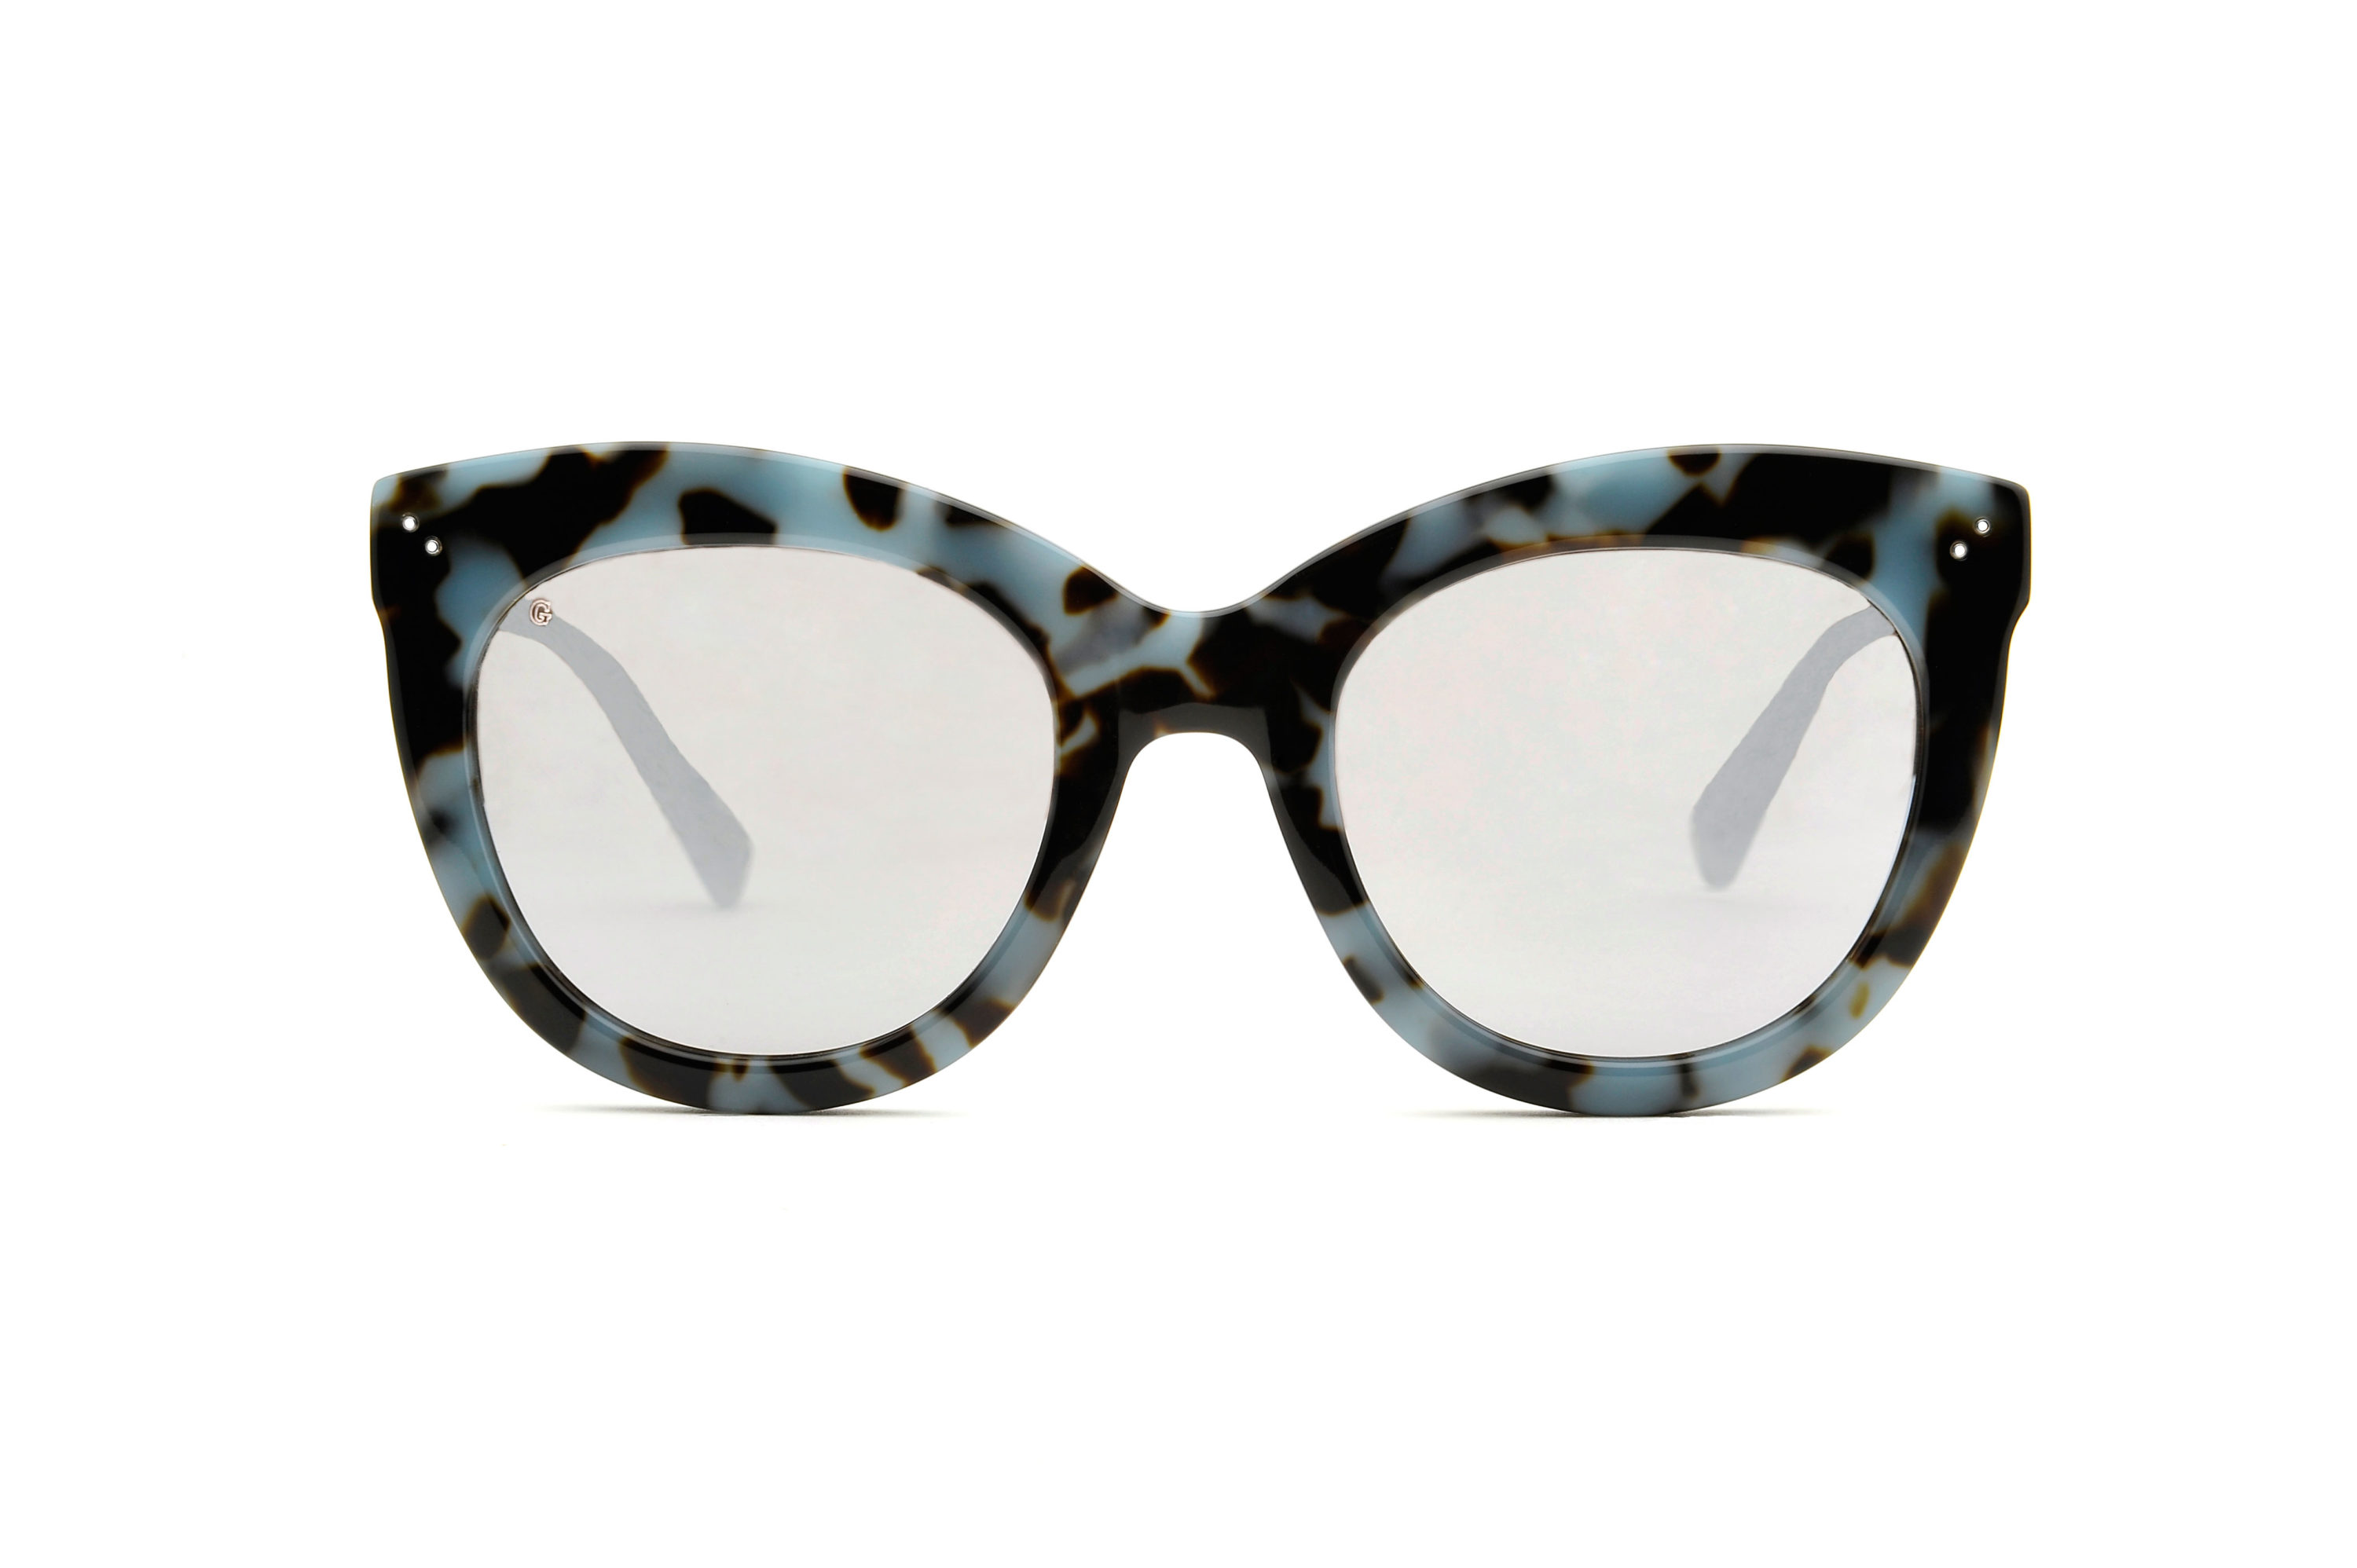 Angel acetate cat eye tortoise sunglasses by GIGI Studios